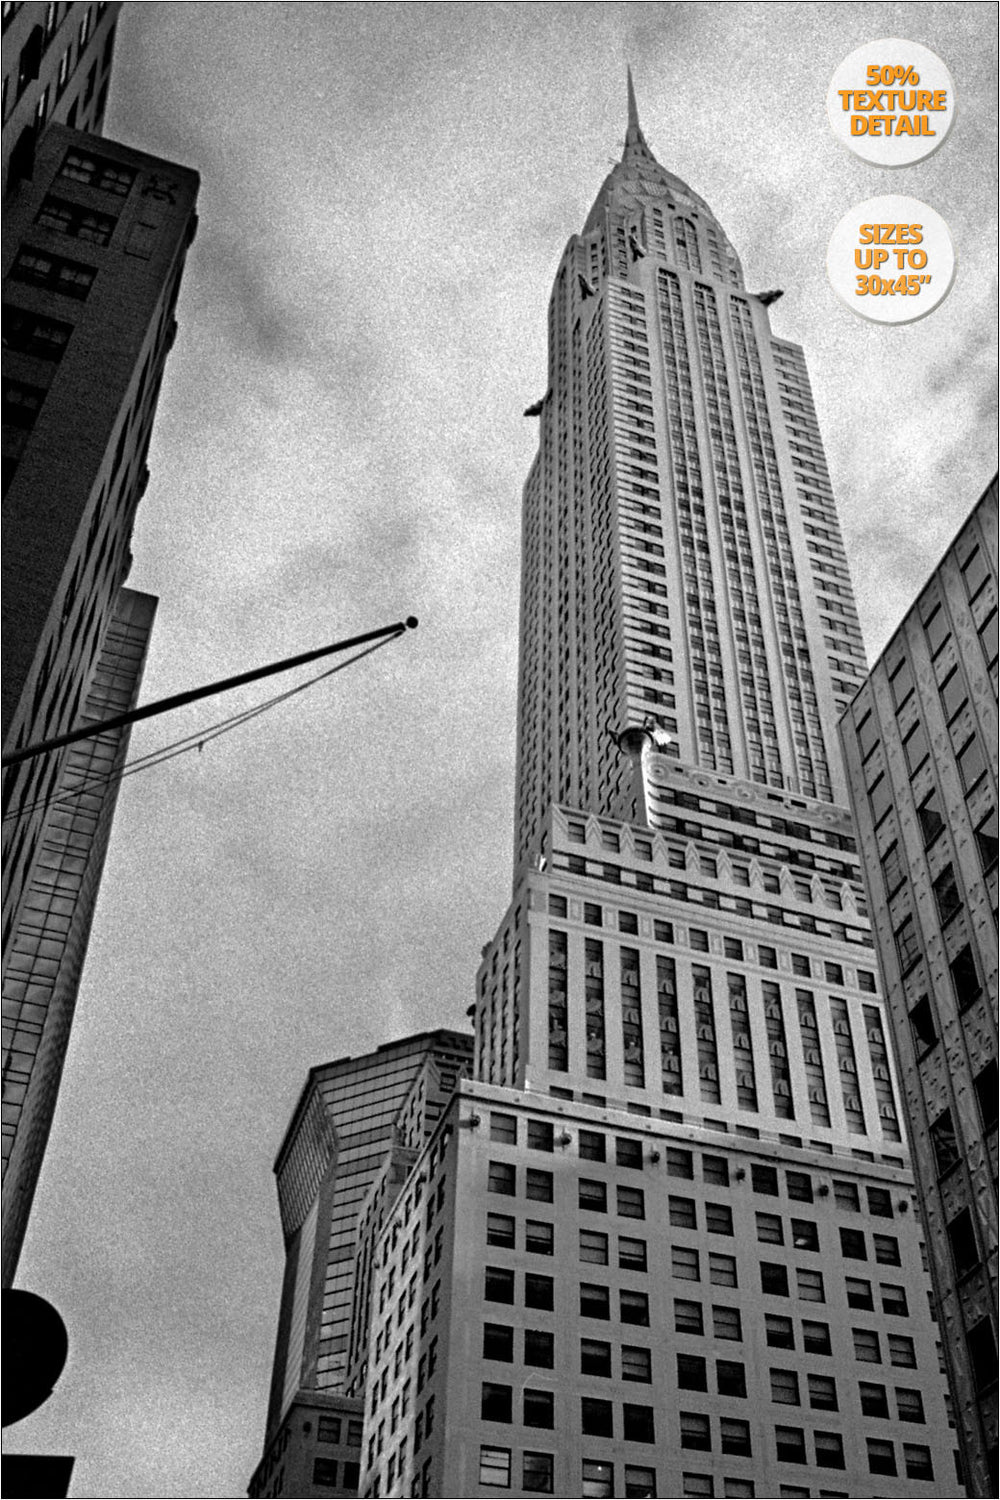 Chrysler Bdg, New York. | By Alberto Mateo, FIne Art Photographer.